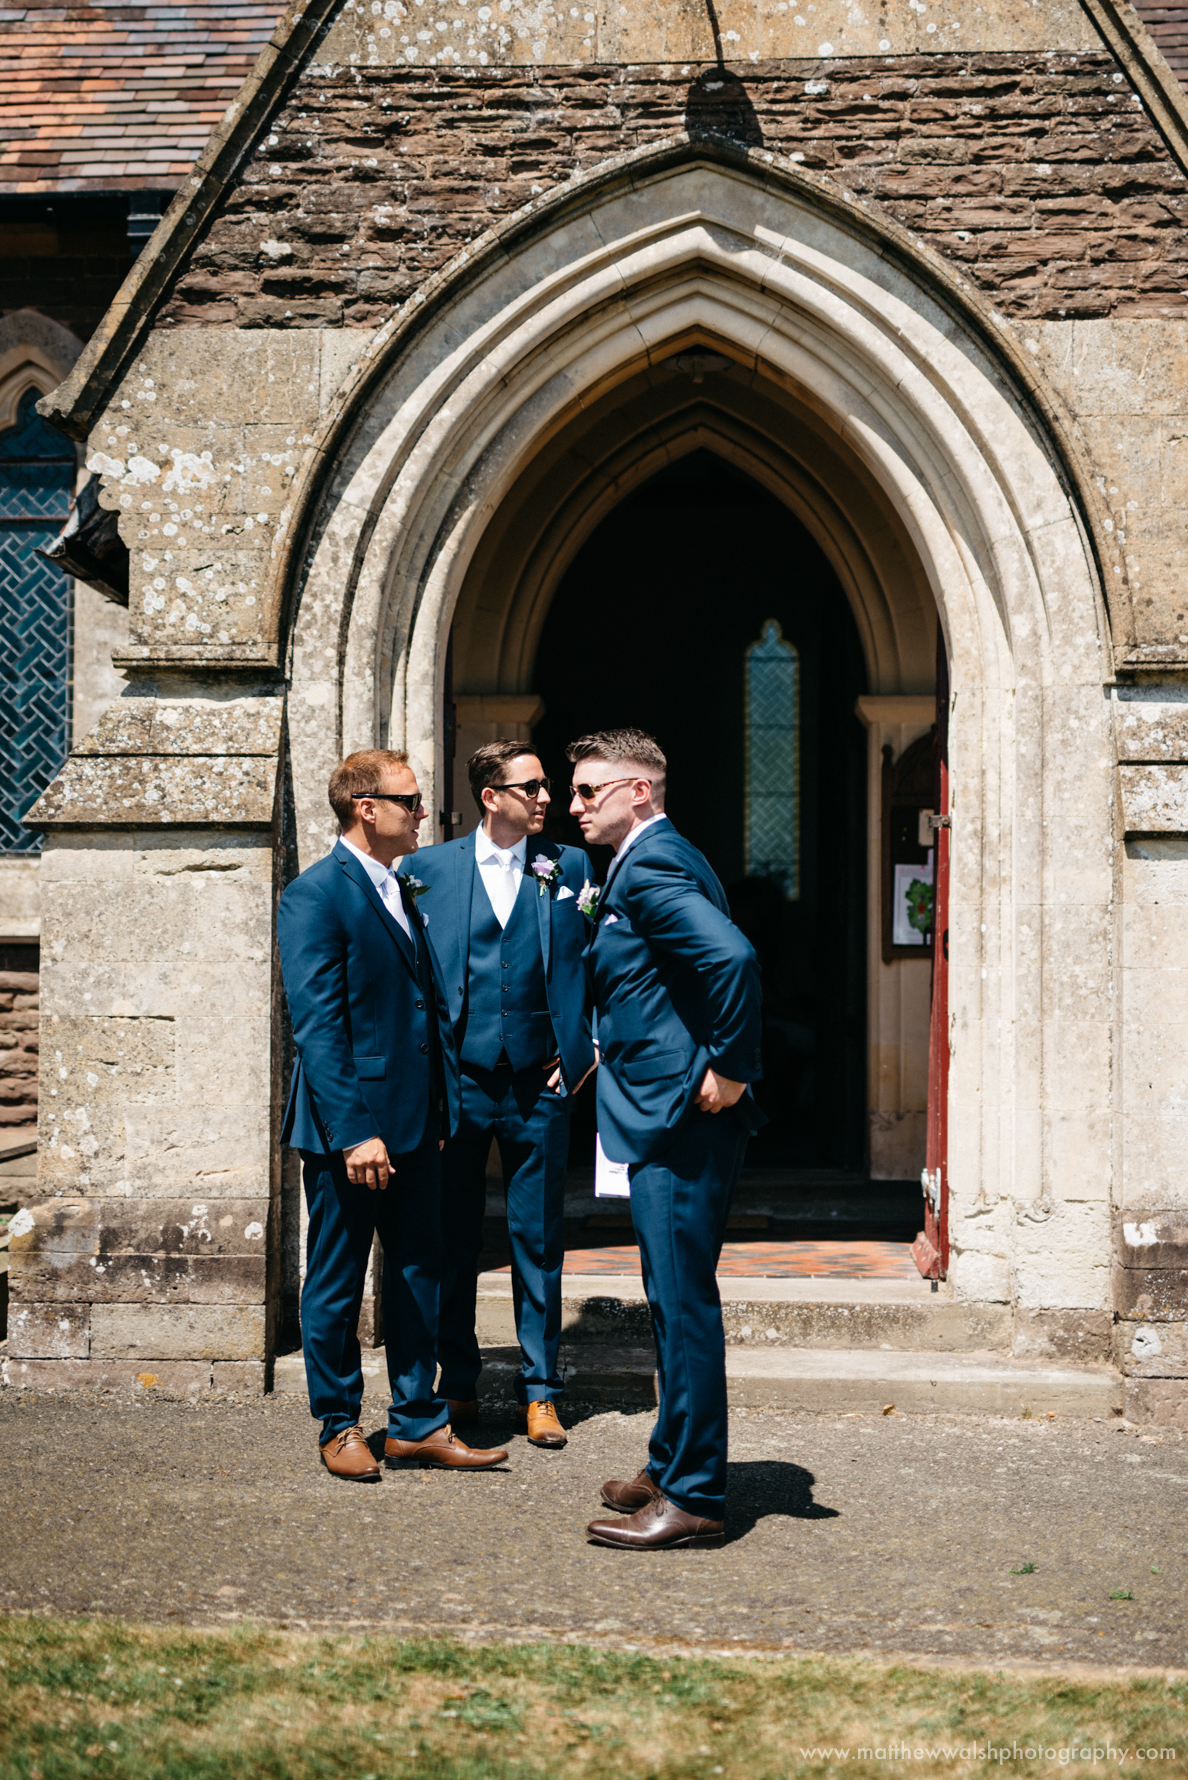 The ushers standing outside the church in the sun waiting for the bridal party